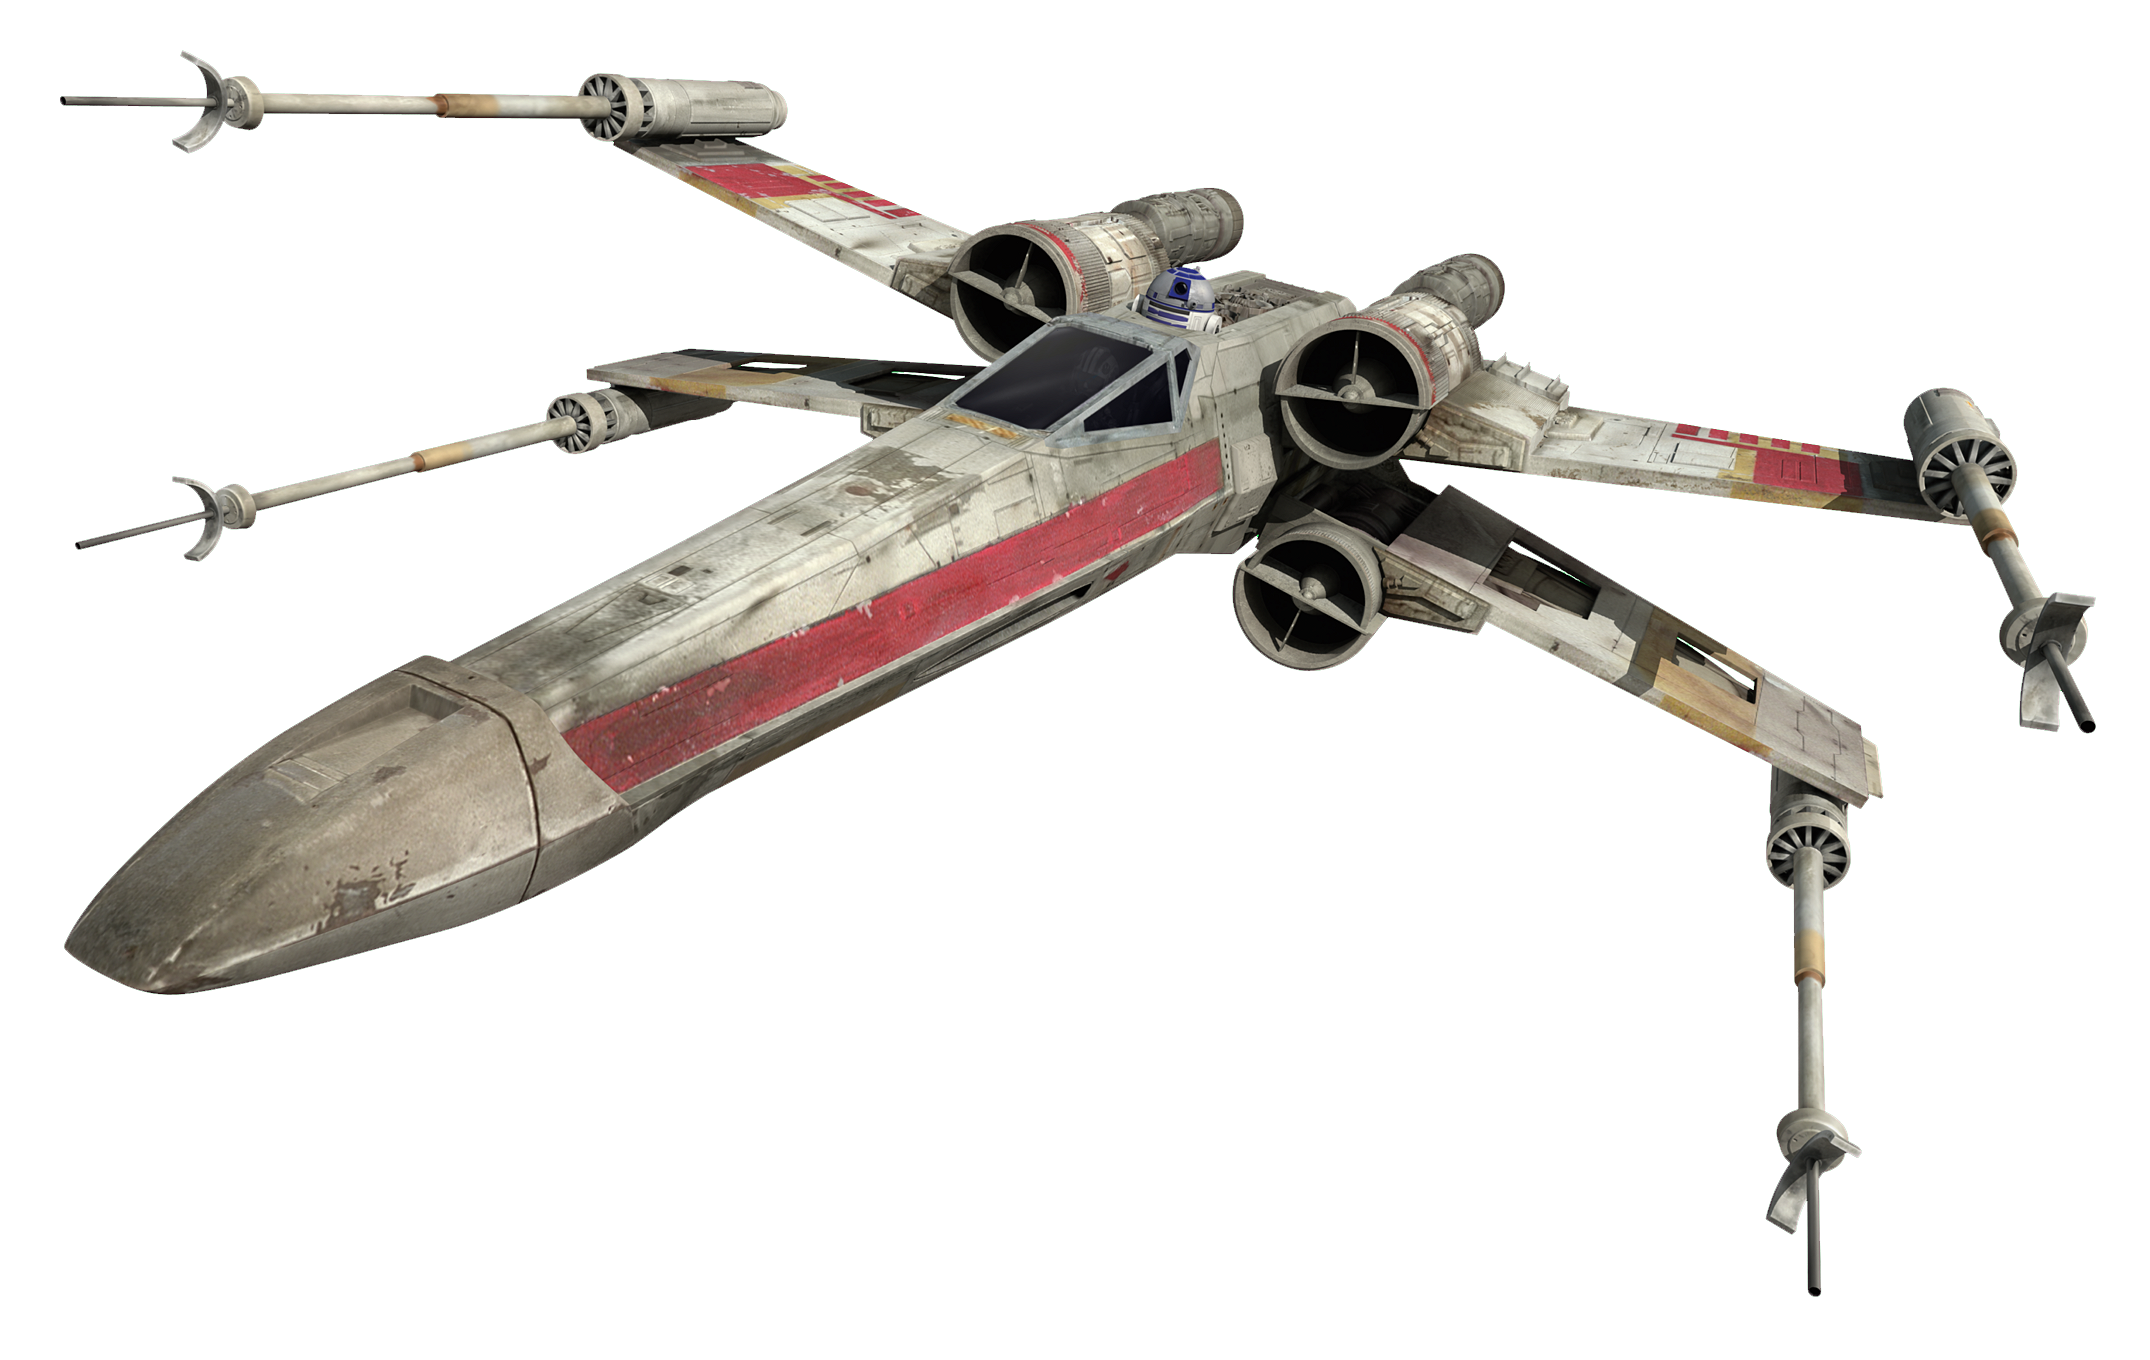 T-65 X-wing starfighter | Wookieepedia | FANDOM powered by Wikia on at-at schematics, halo warthog schematics, y-wing schematics, b-wing schematics, tie interceptor schematics, a wing fighter schematics, slave 1 schematics, minecraft schematics,